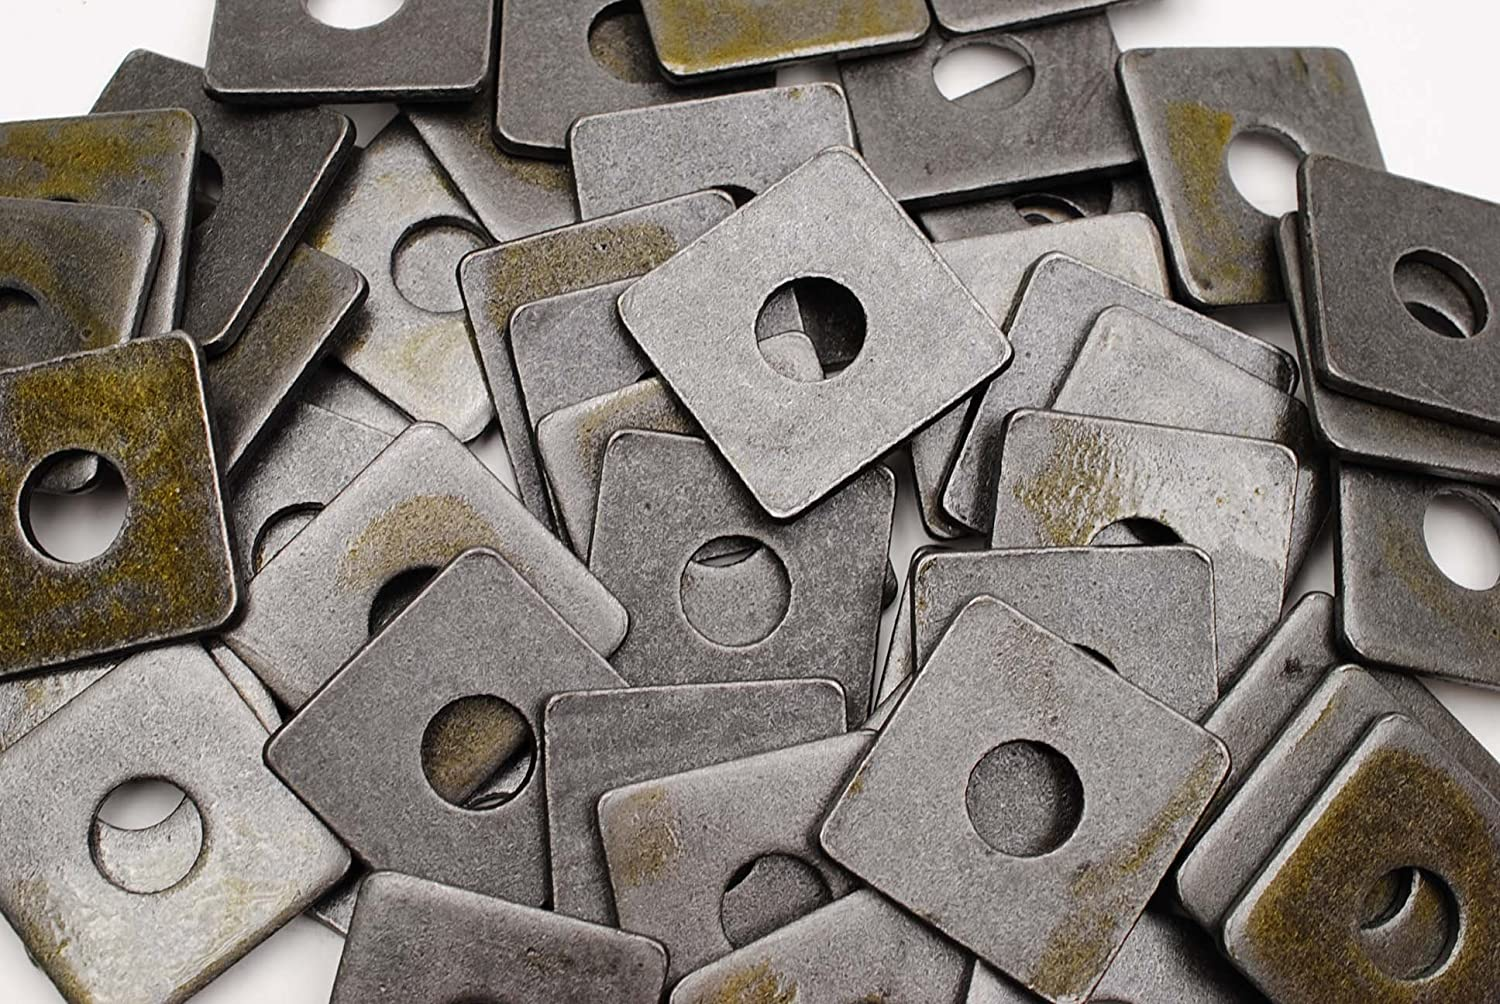 40 Plain Steel 5 8 x 2 Square Unplate Thick 16 Animer and price revision Al sold out. Plate Washers 3